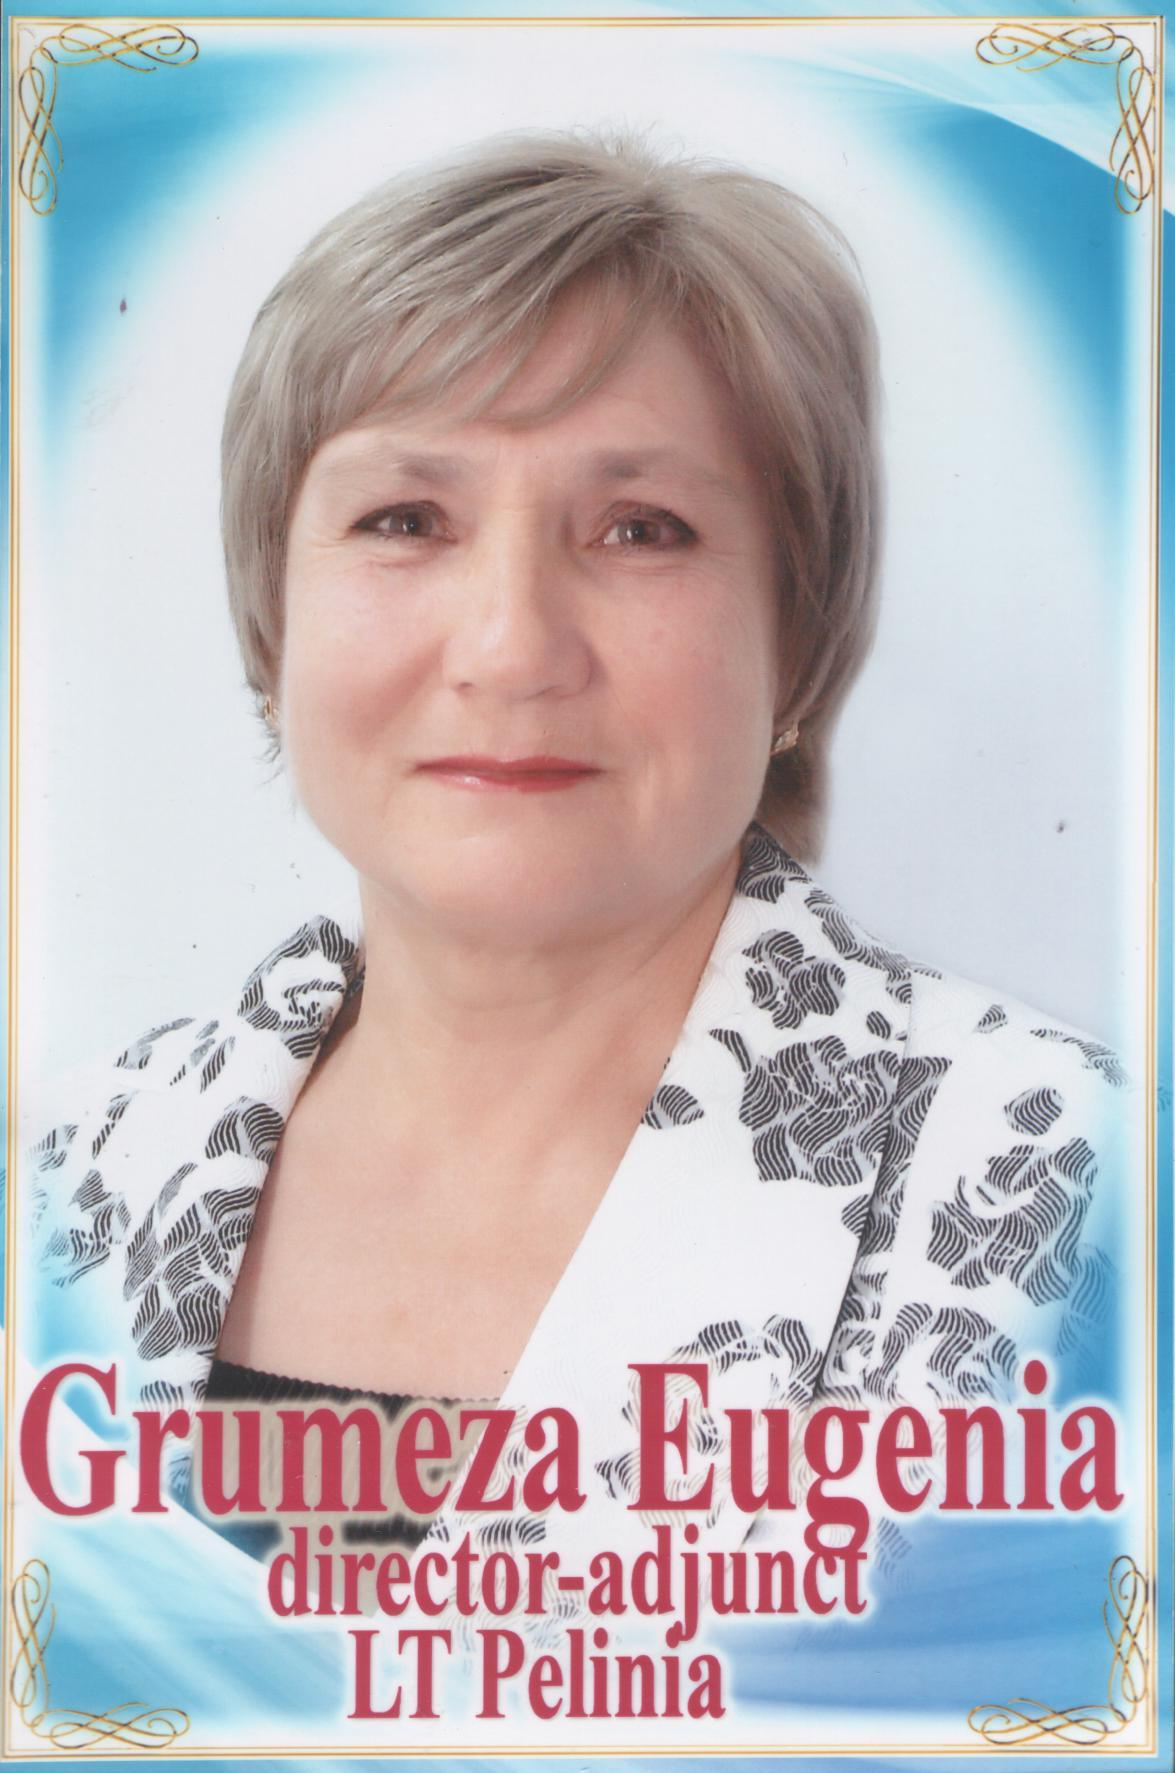 GRUMEZA EUGENIA, director-adjunct LT